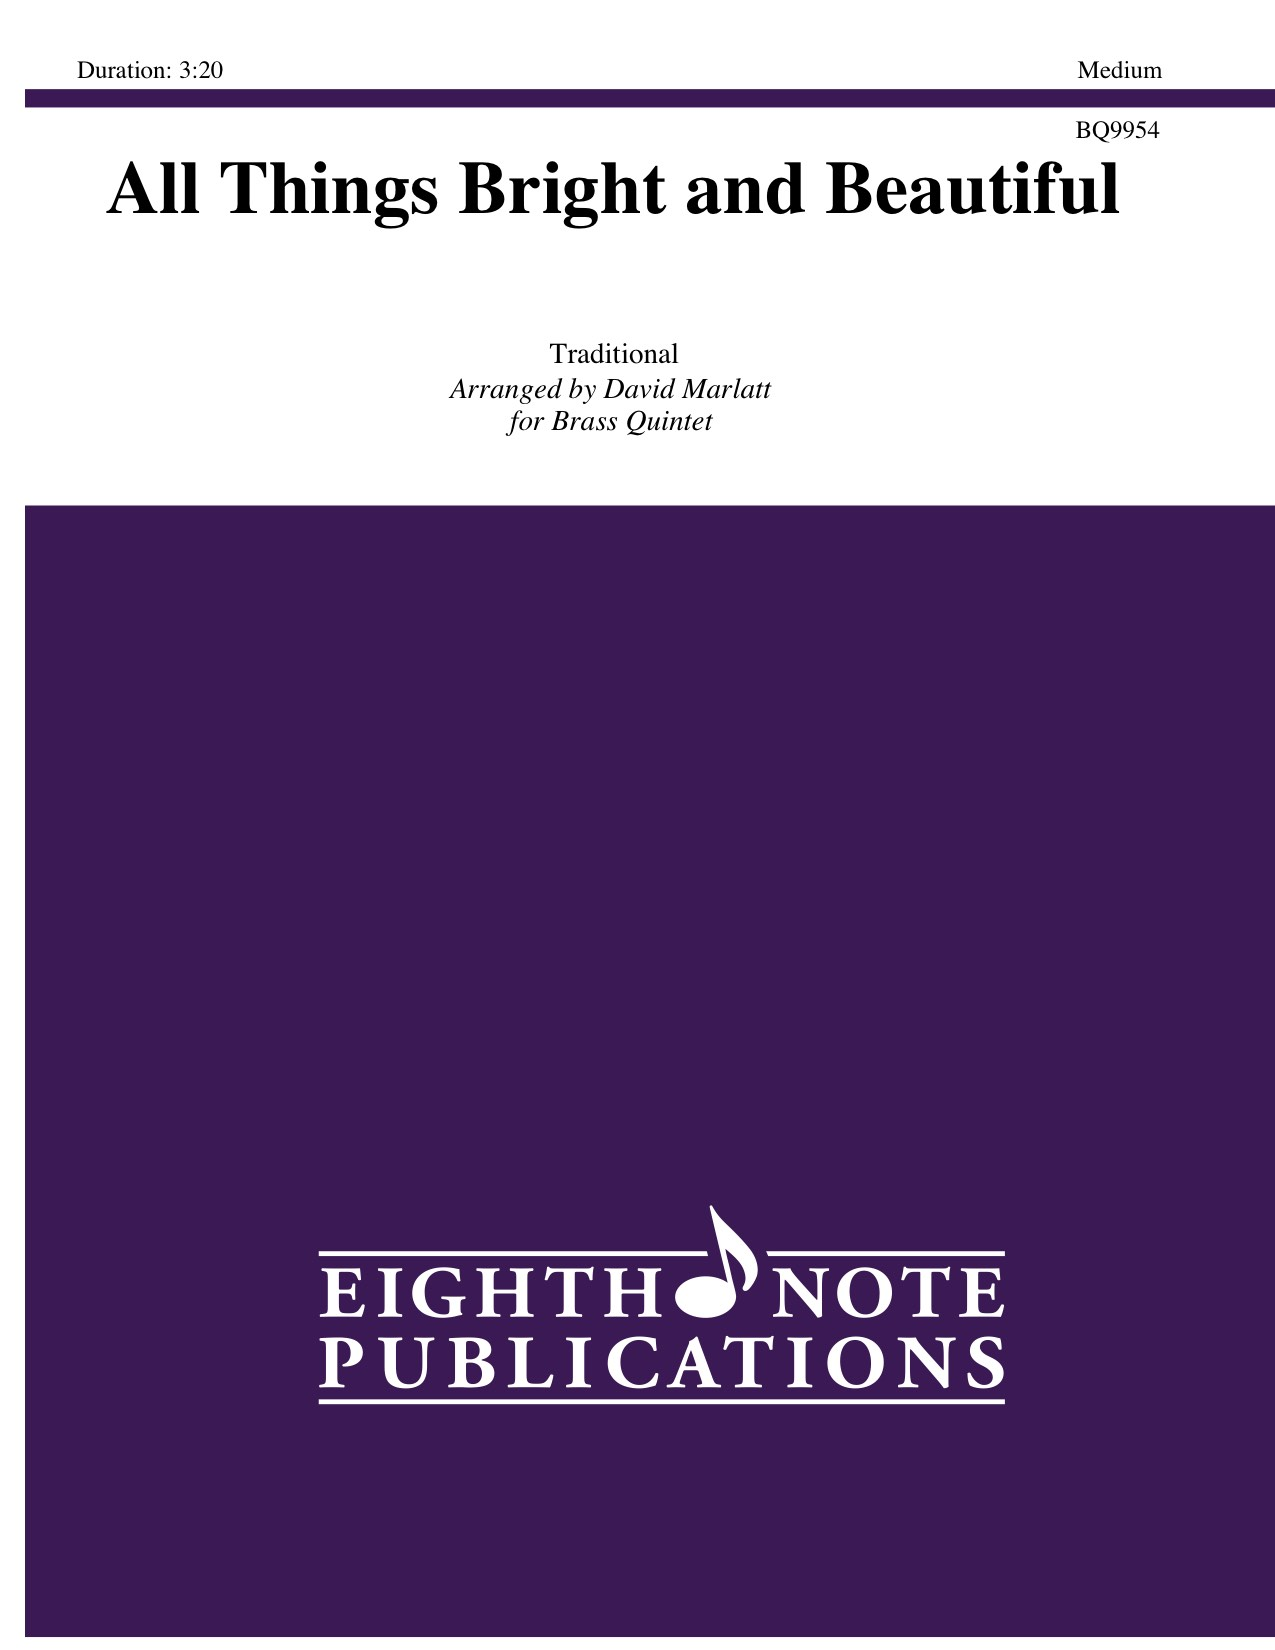 All Things Bright and Beautiful -  Traditional